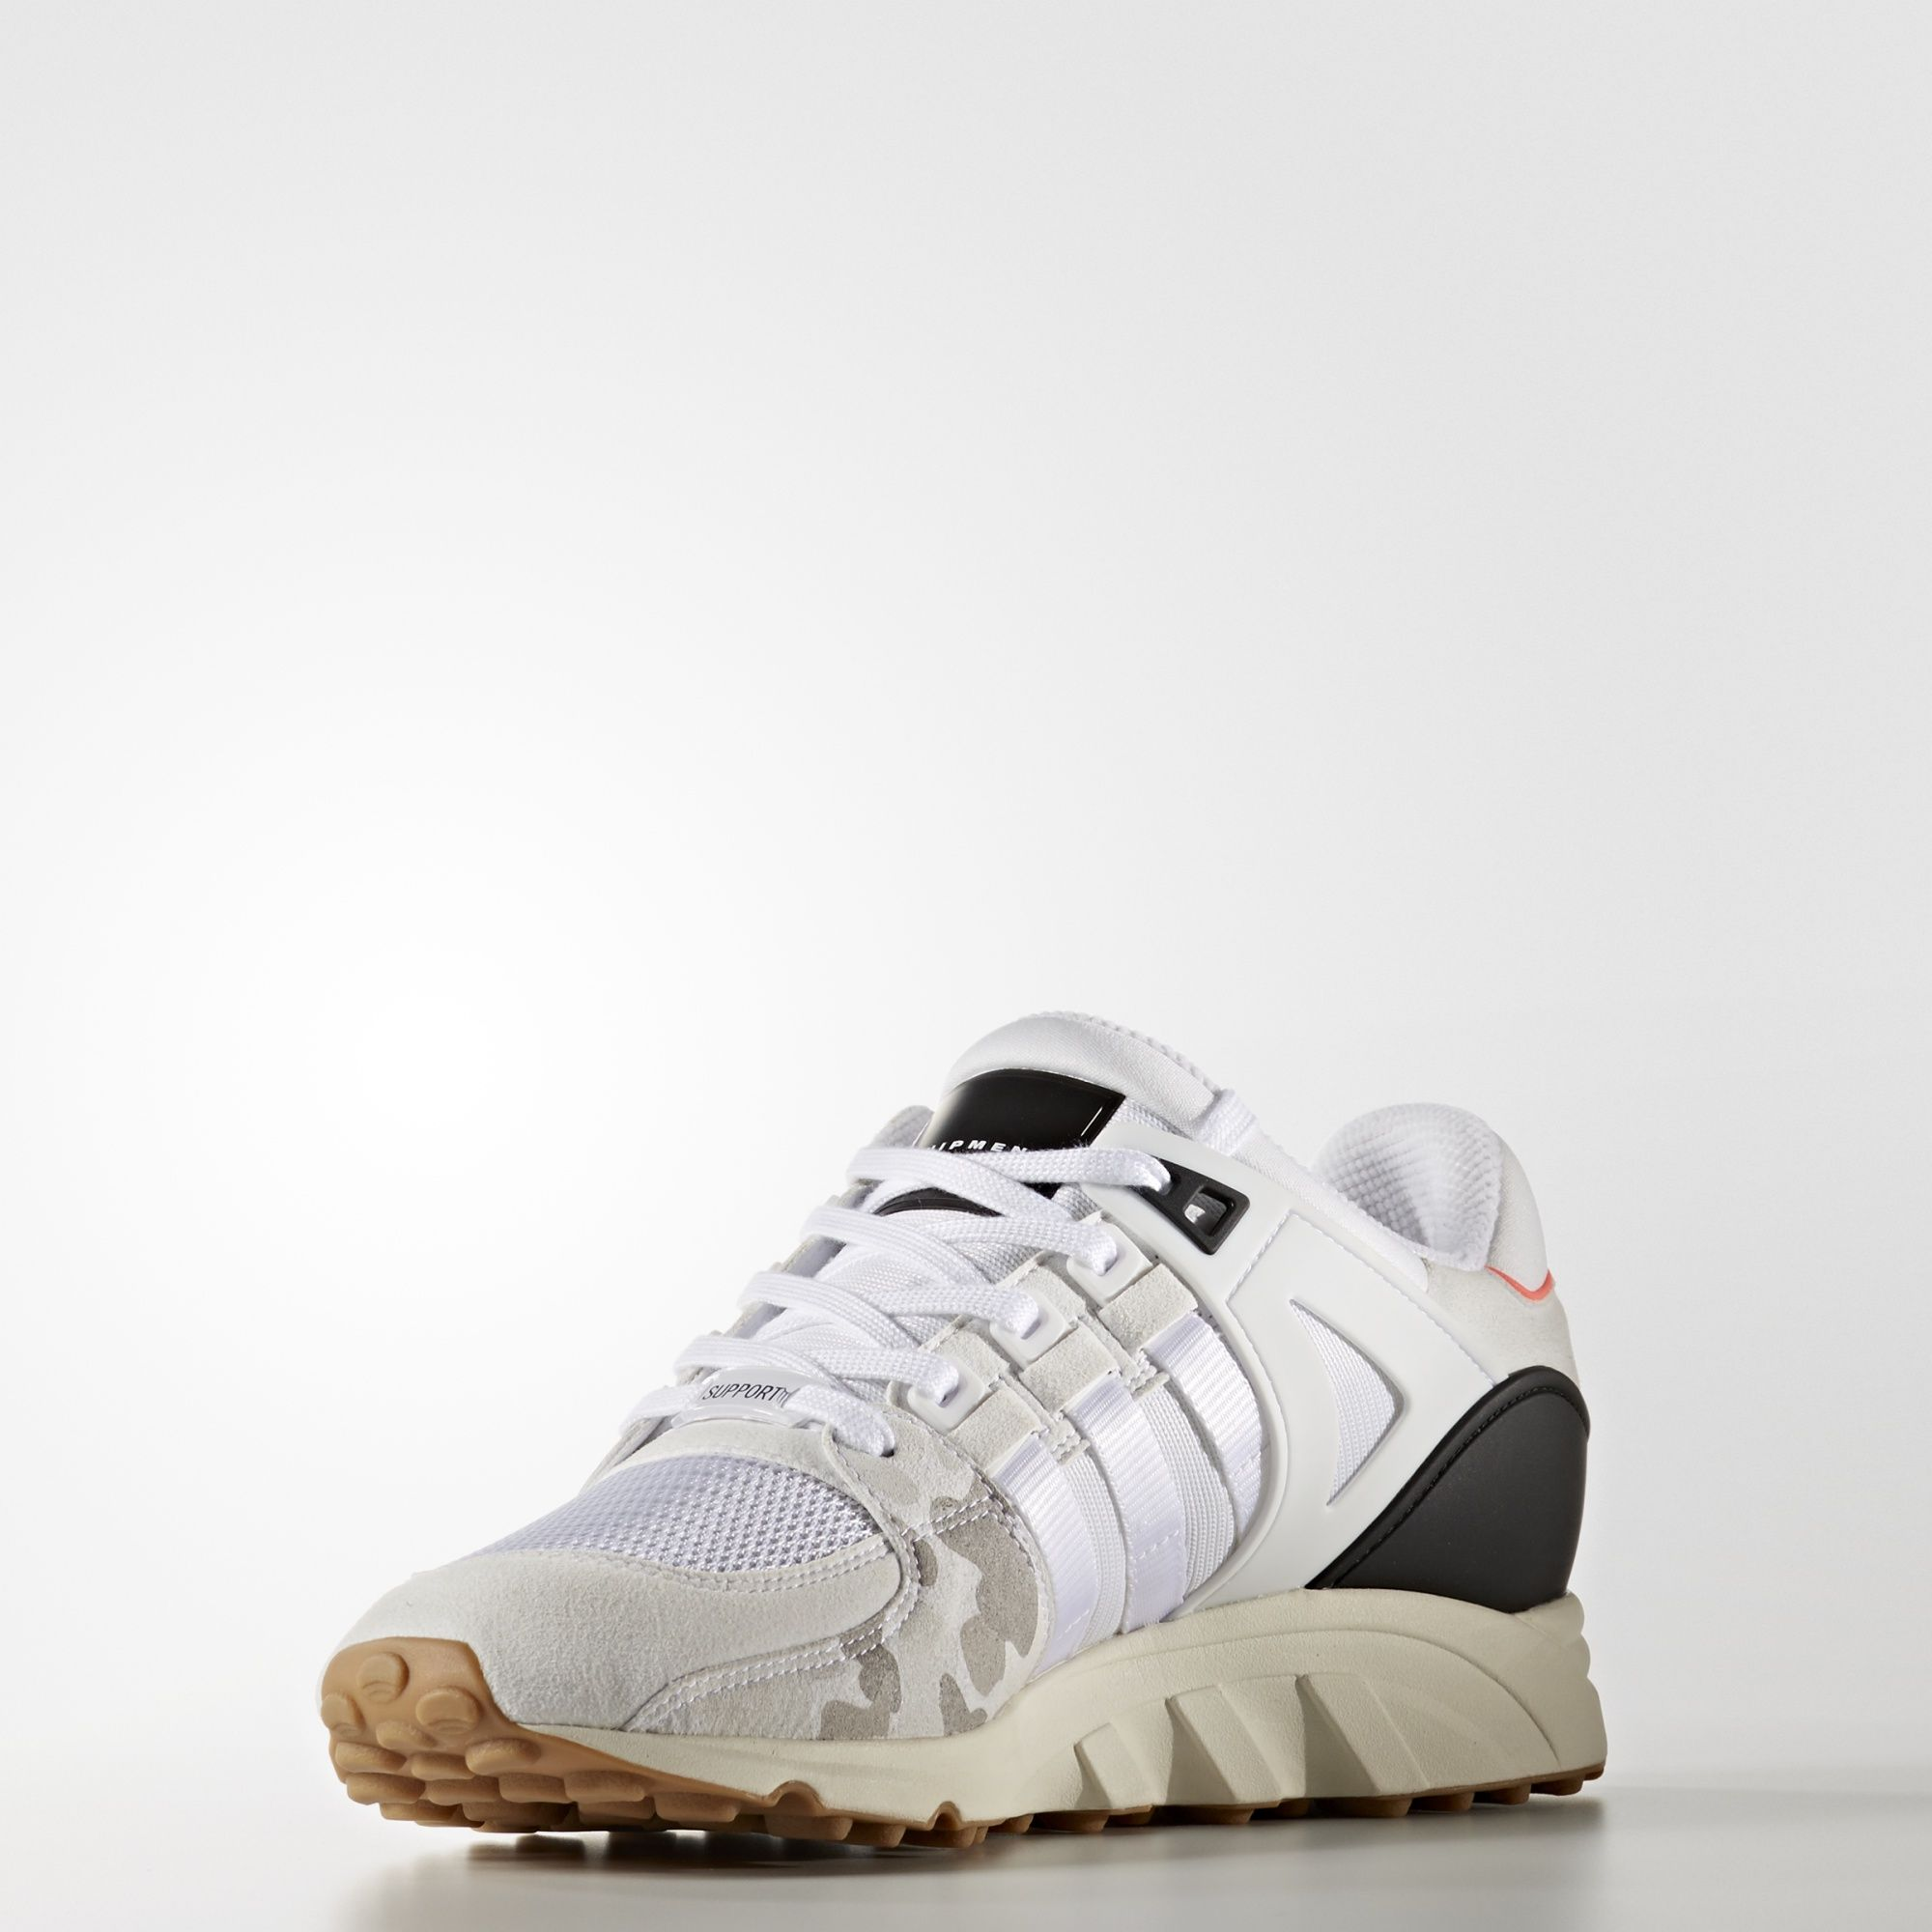 adidas EQT Support RF White Camo BB1995 2